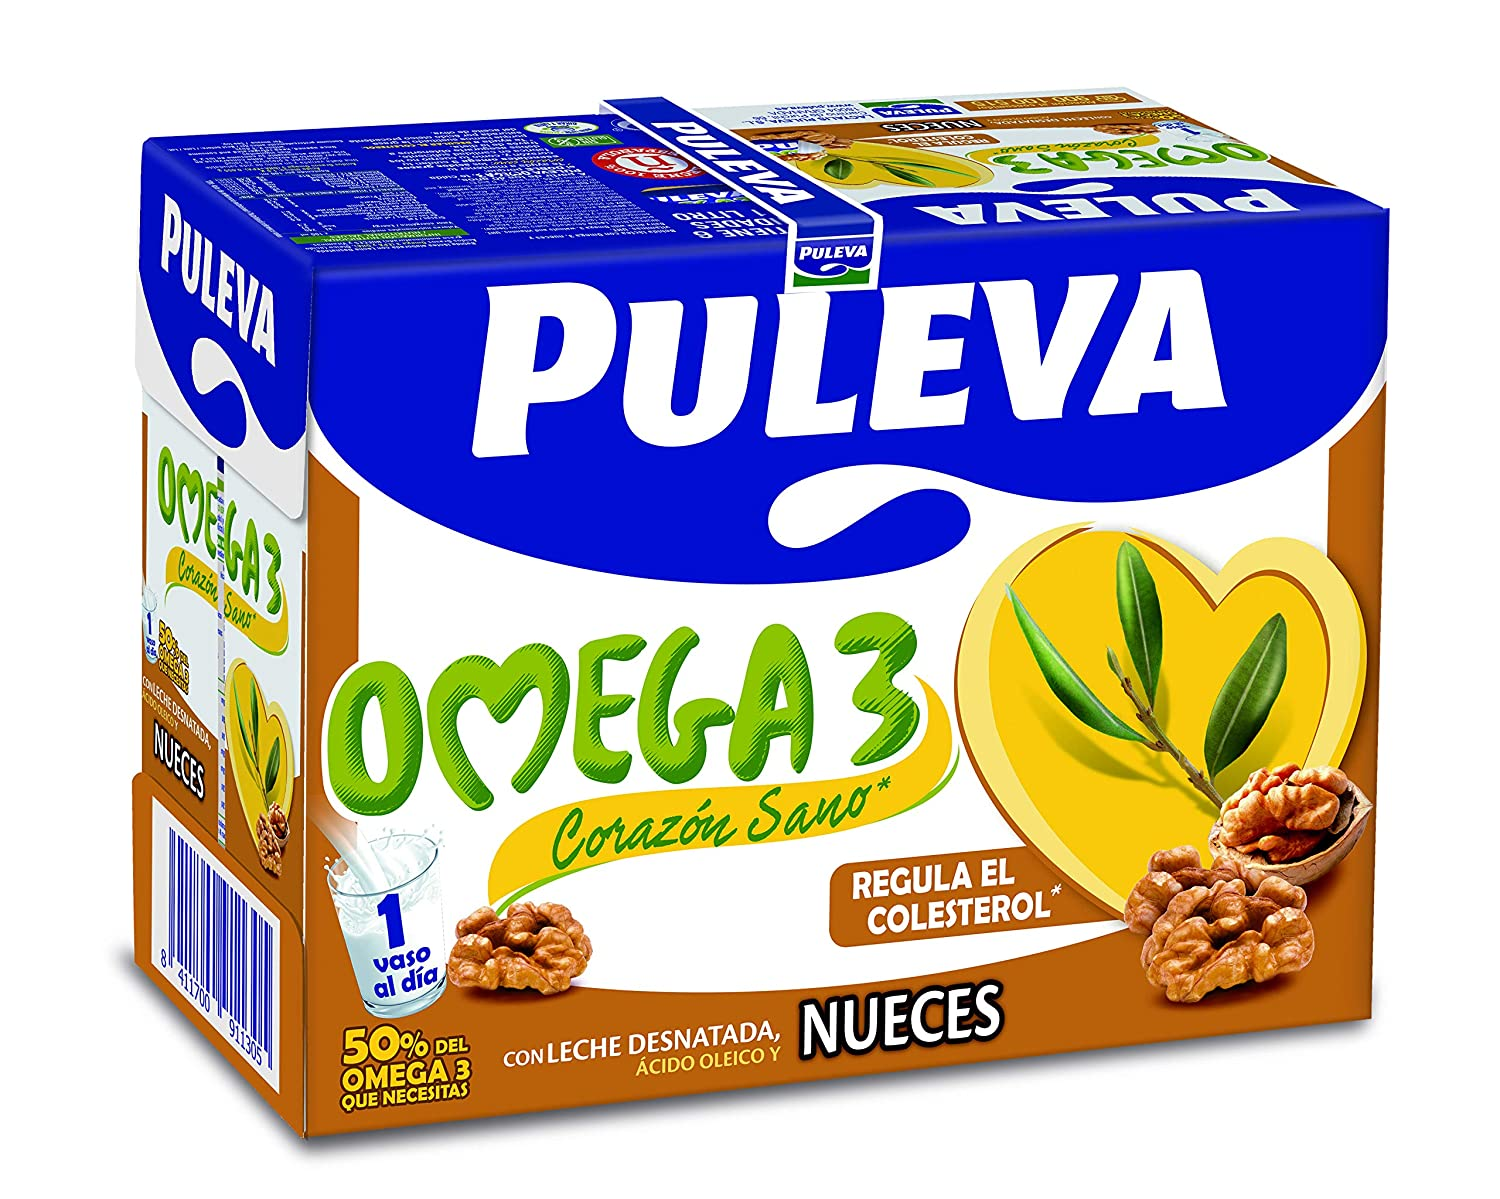 Puleva Leche Omega 3 con Nueces - Pack de 6 x 1 l - Total: 6 l: Amazon.es: Amazon Pantry